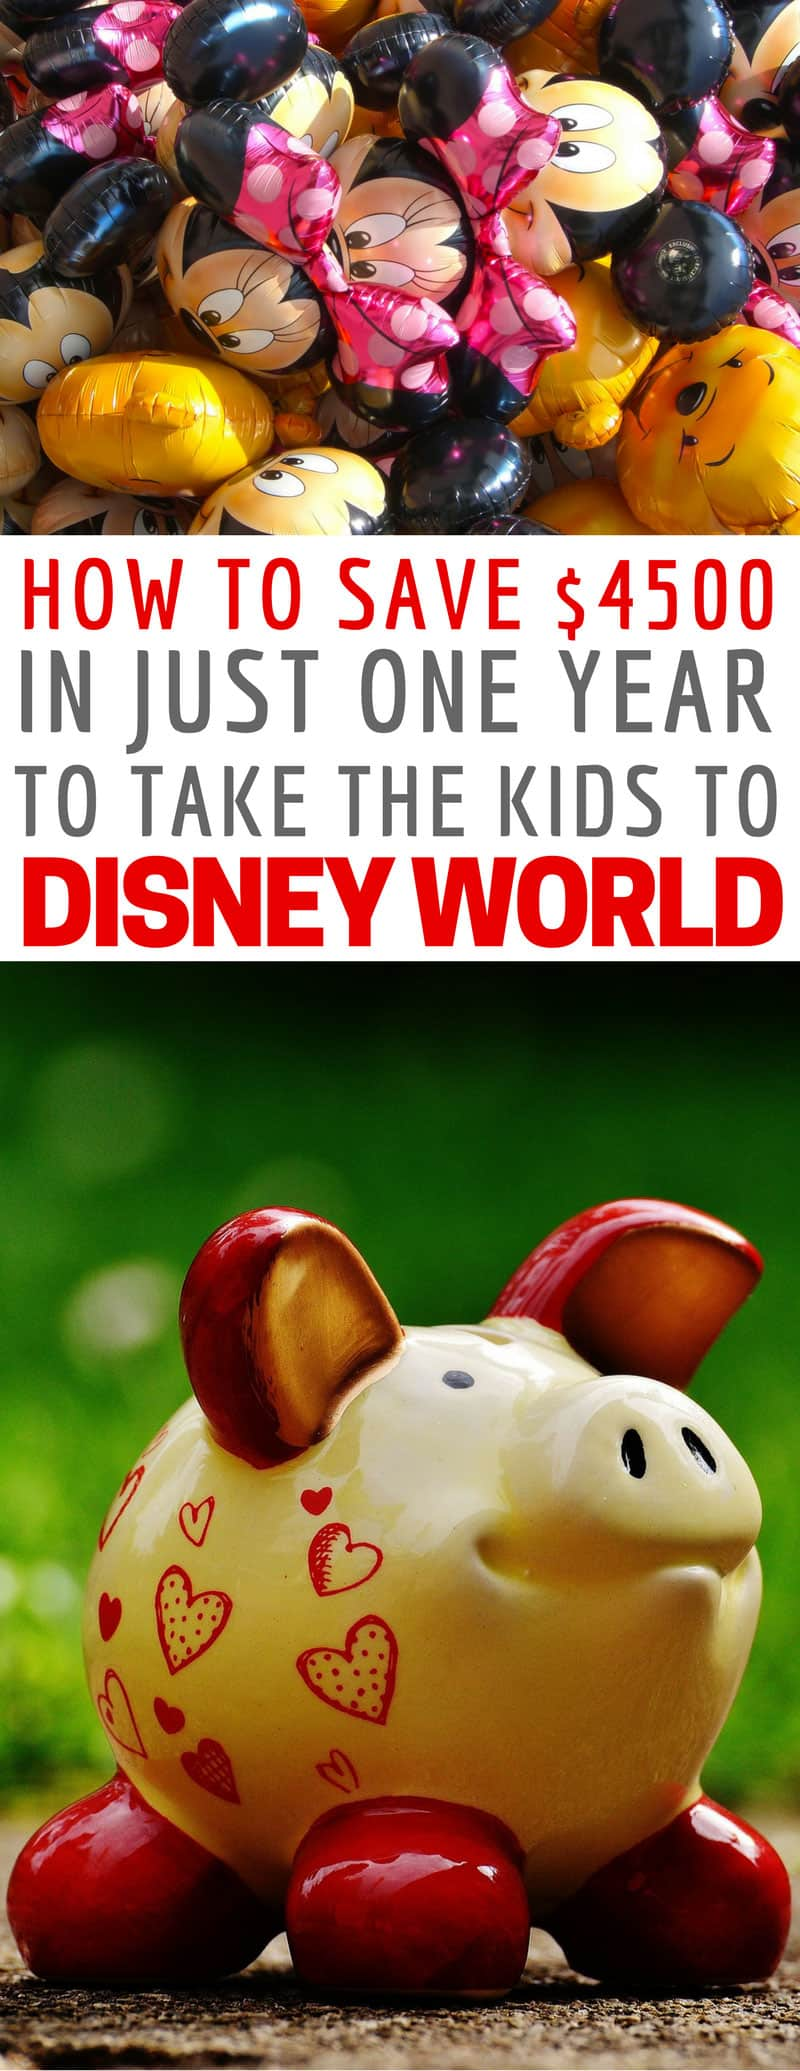 Now I can see how easy it is to save money for Disney World we can take the kids! Thanks for sharing!